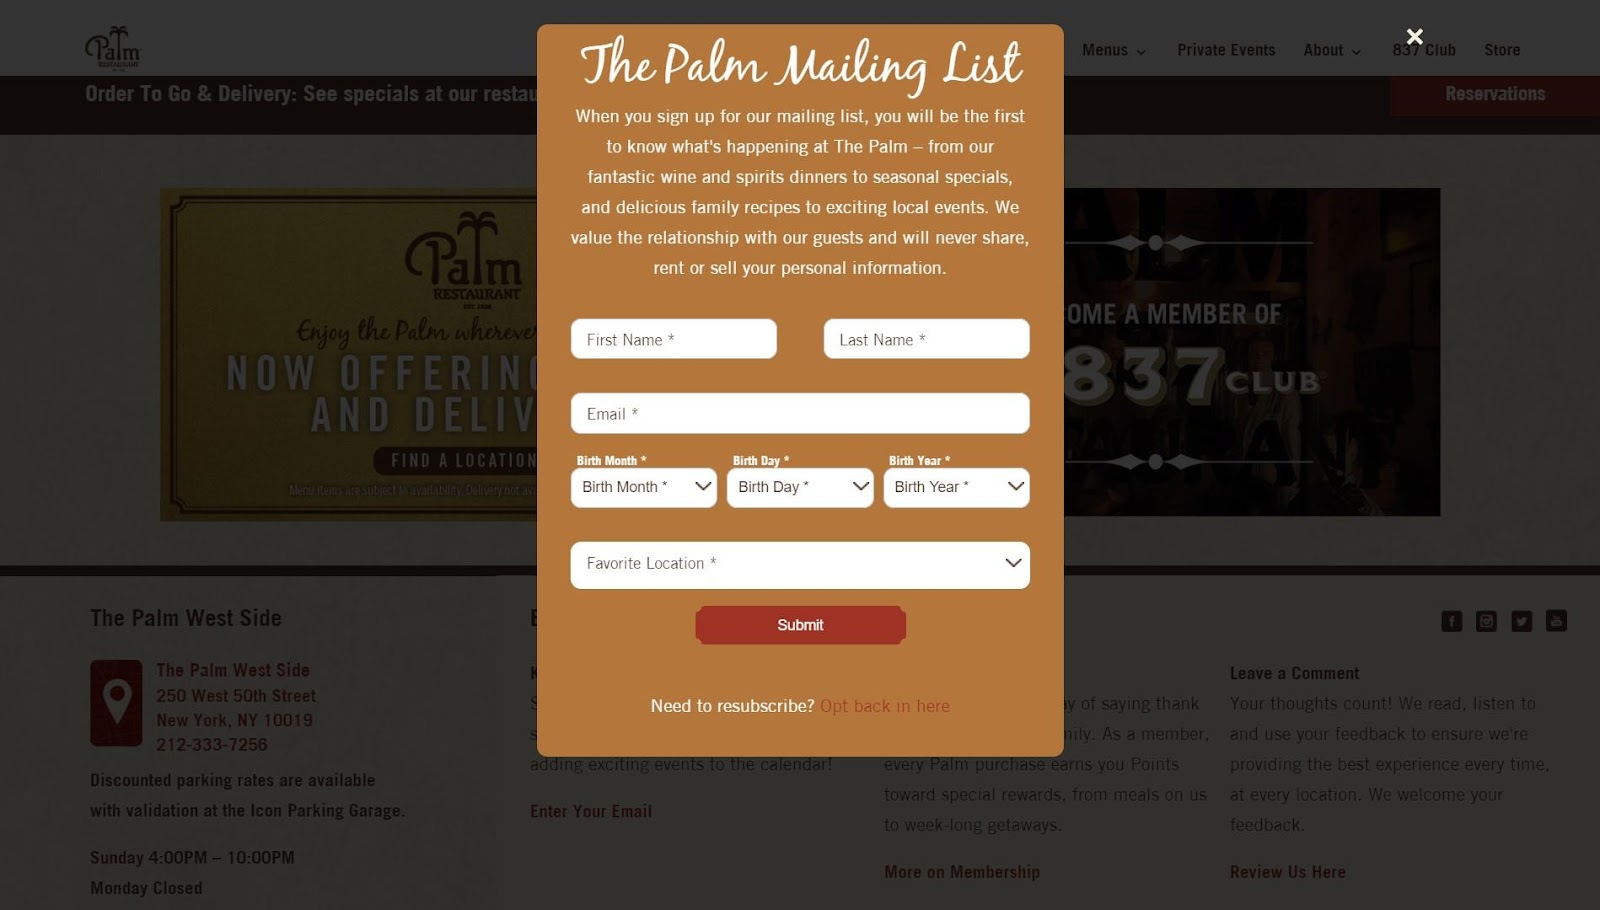 The pop up from Palm Restaurant's website - the background has a dark overlay to hide the website.